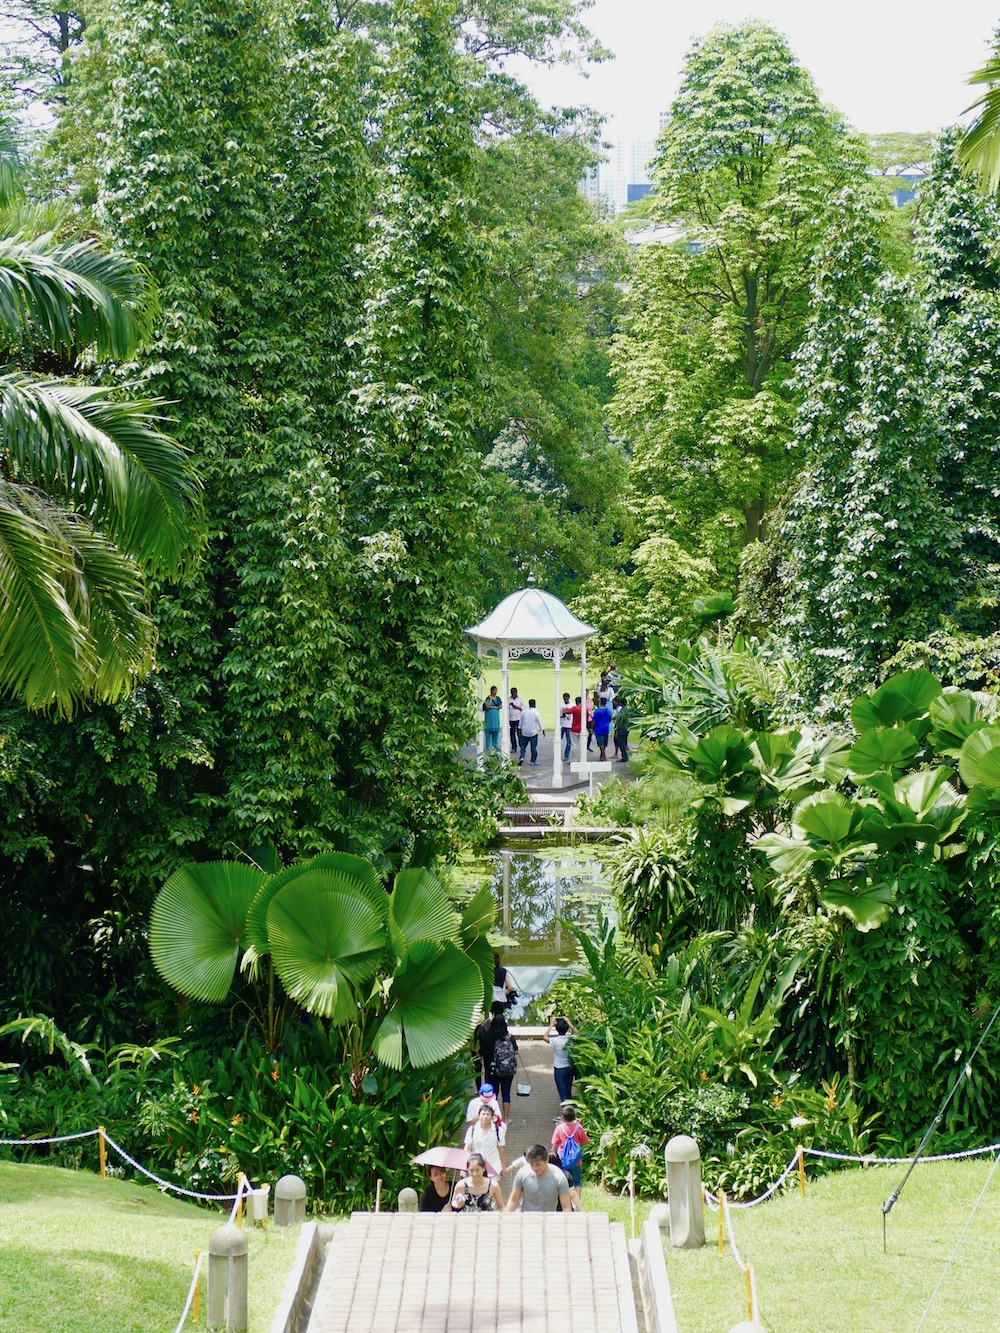 Pretty see-through in the gardens of the Istana |curlytraveller.com